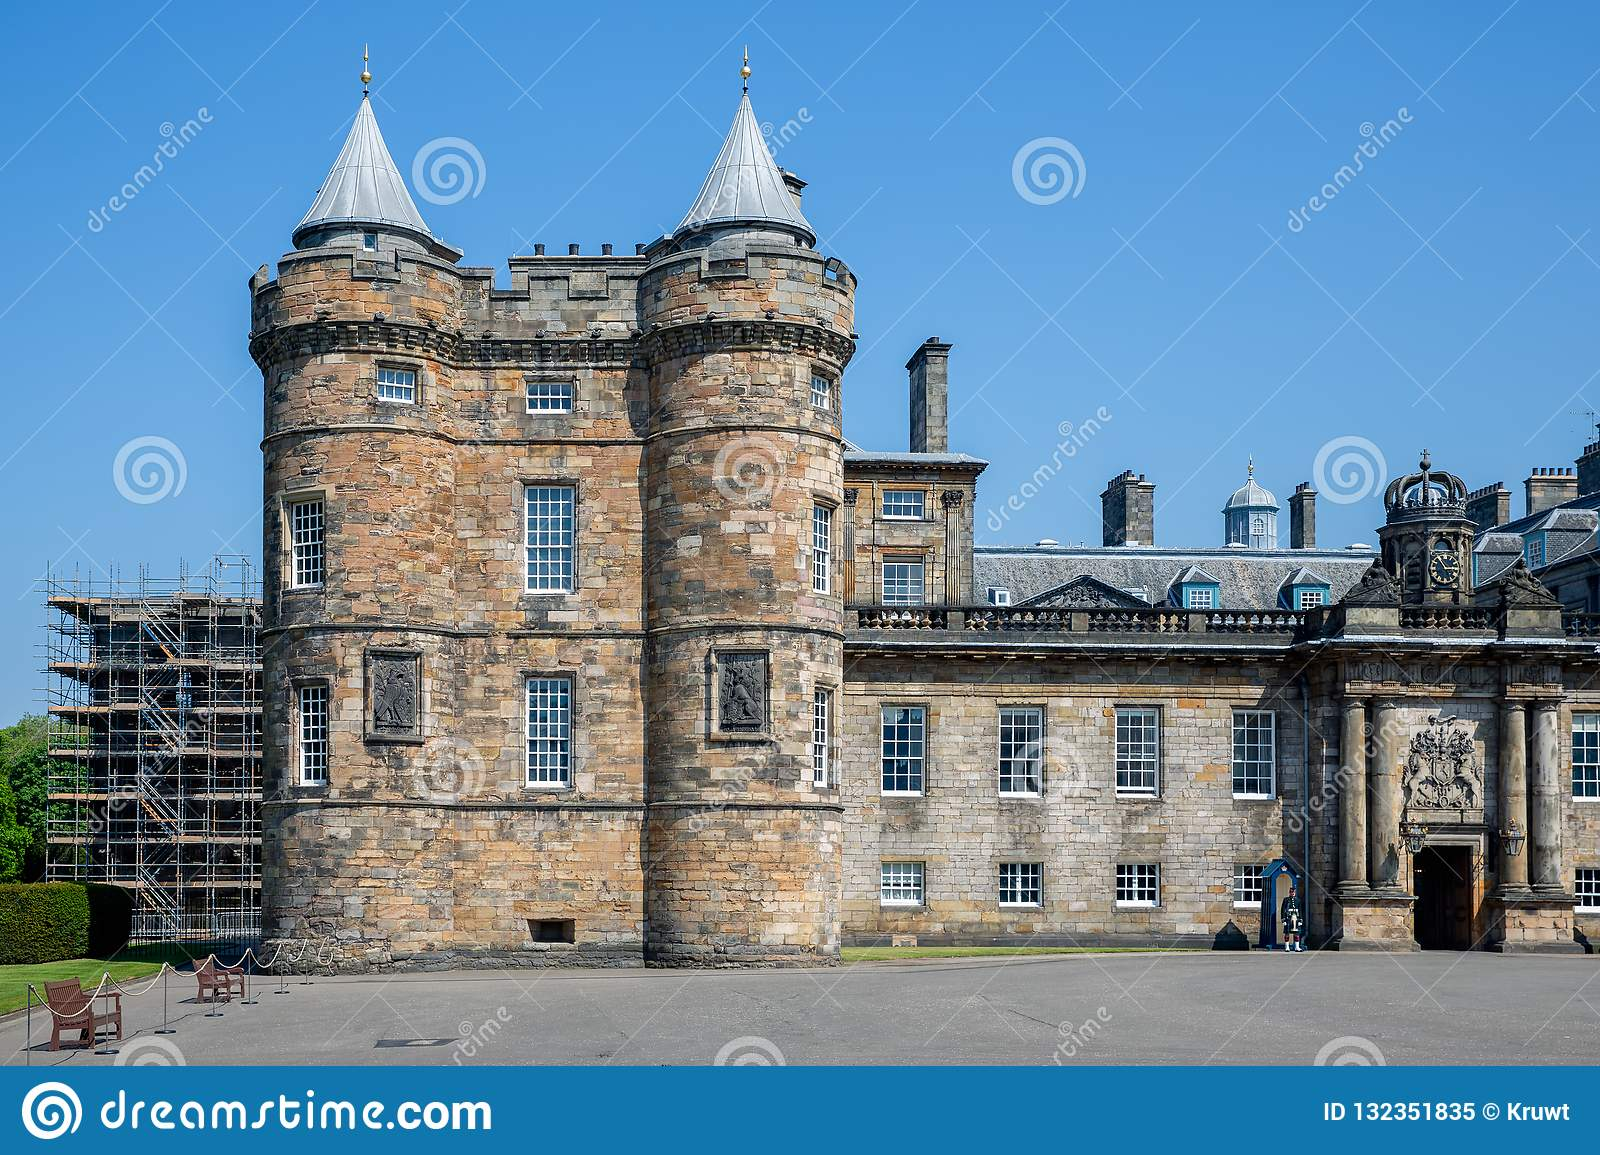 Palace of Holyrood house Edinburgh, official residence Monarchy in Scotland